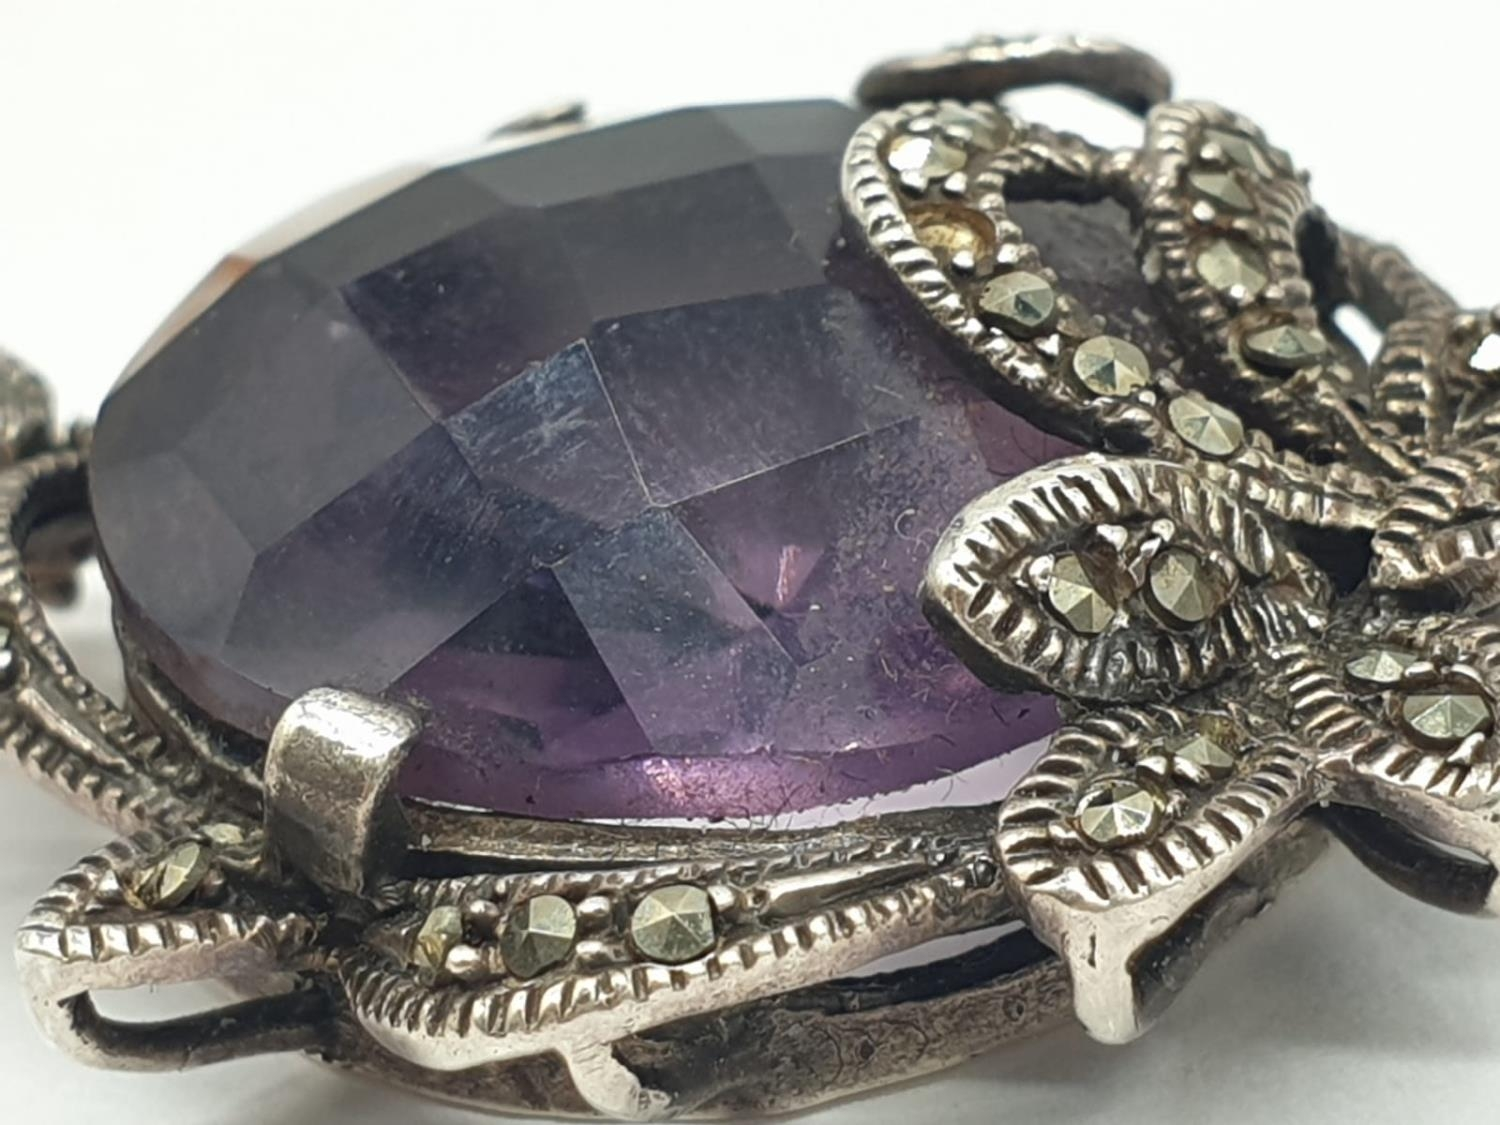 Amethyst and Marcasite NECKLACE with Freshwater Pearl and Silver setting. 40g 44cm - Image 4 of 8